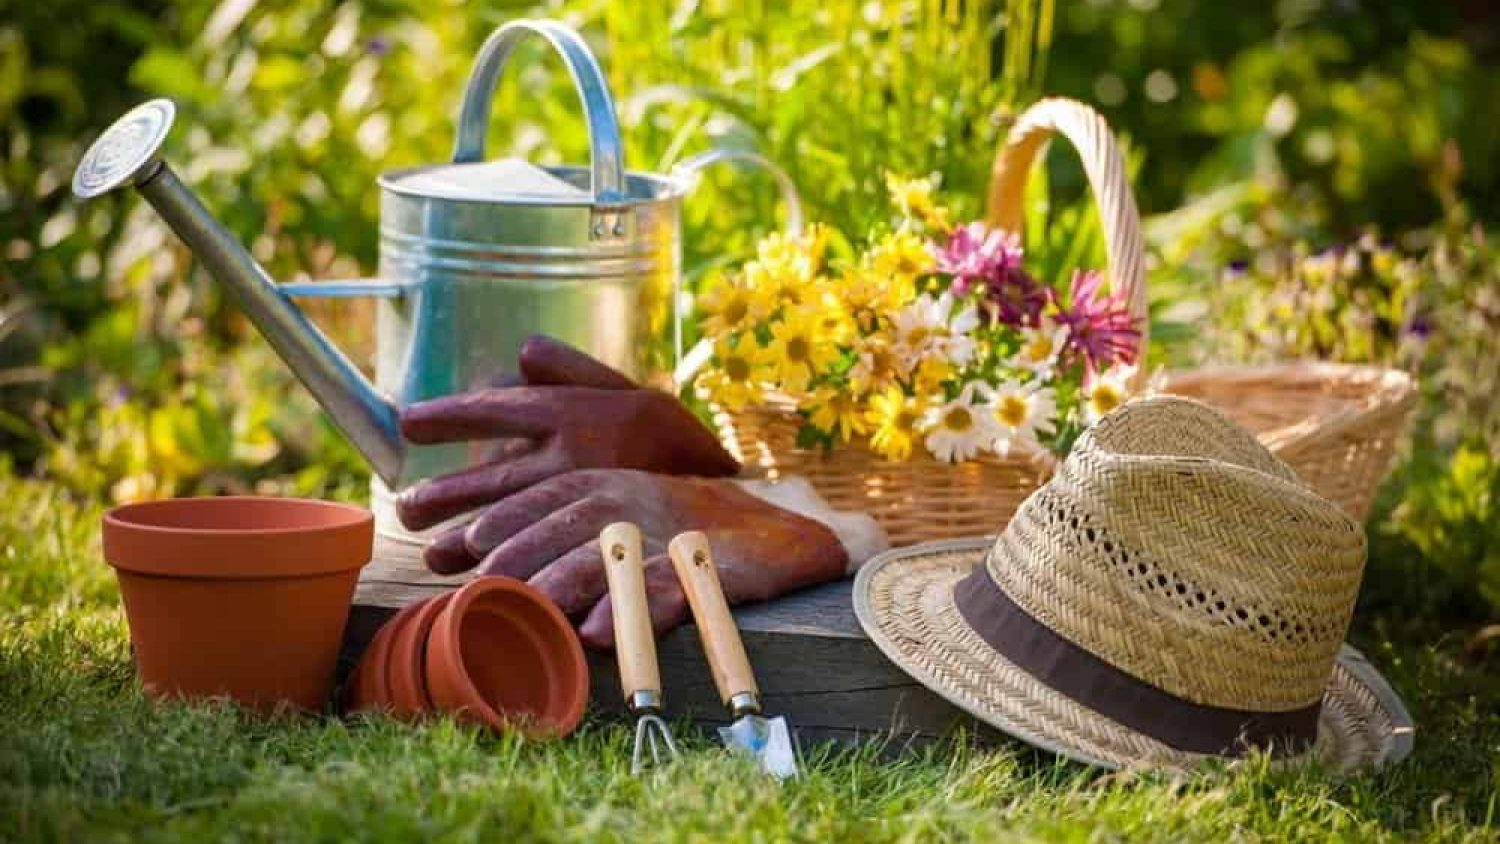 10 Essential Gardening Tools List and How to Use Them